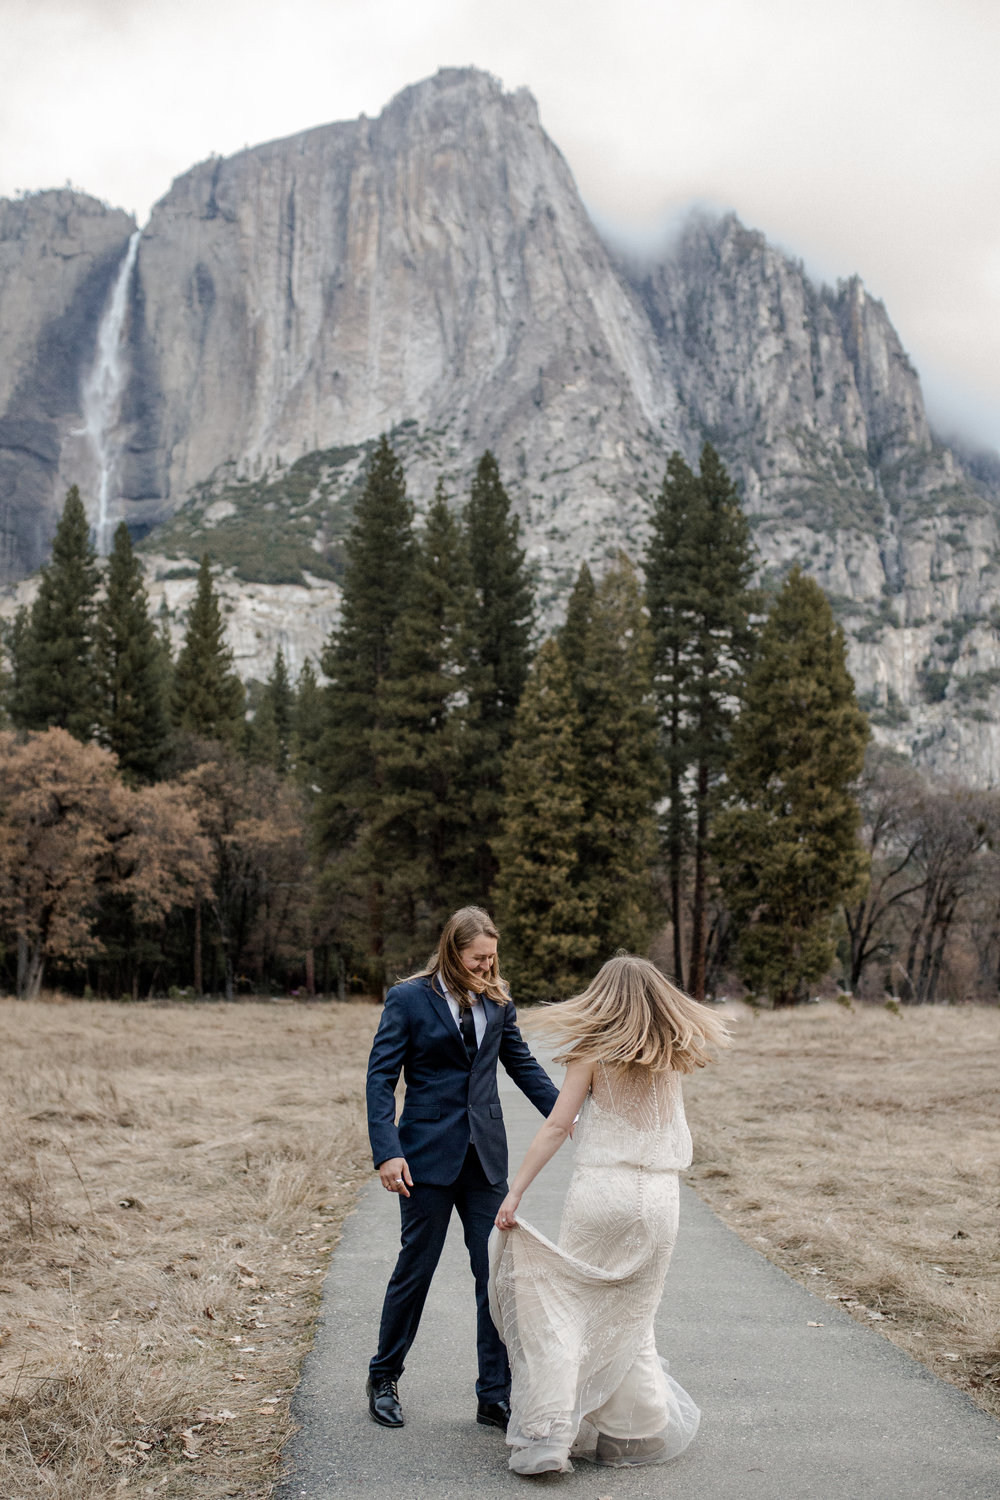 nicole-daacke-photography-yousemite-national-park-elopement-photographer-winter-cloud-moody-elope-inspiration-yosemite-valley-tunnel-view-winter-cloud-fog-weather-wedding-photos-27.jpg